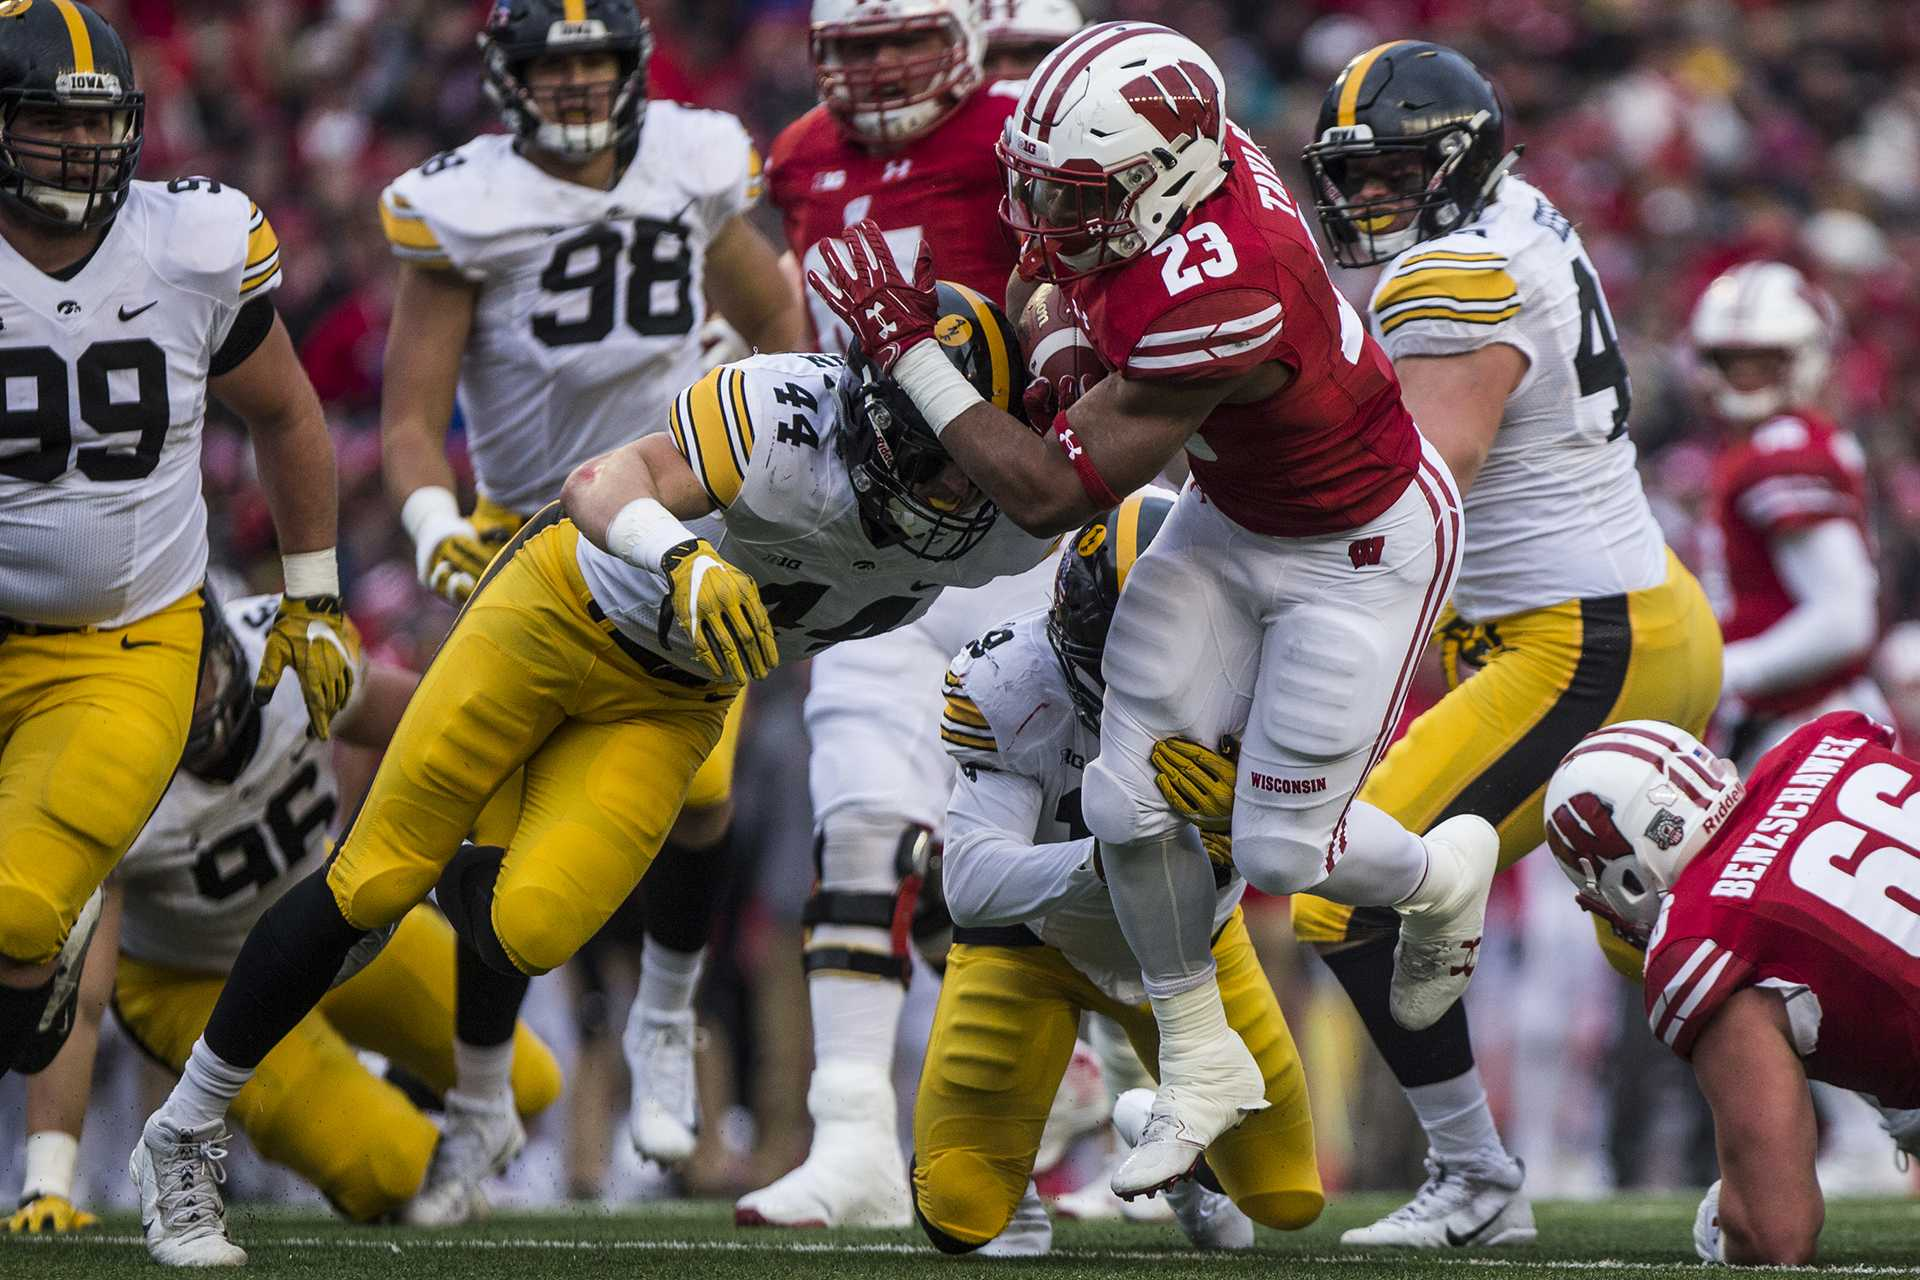 By the numbers: Wisconsin